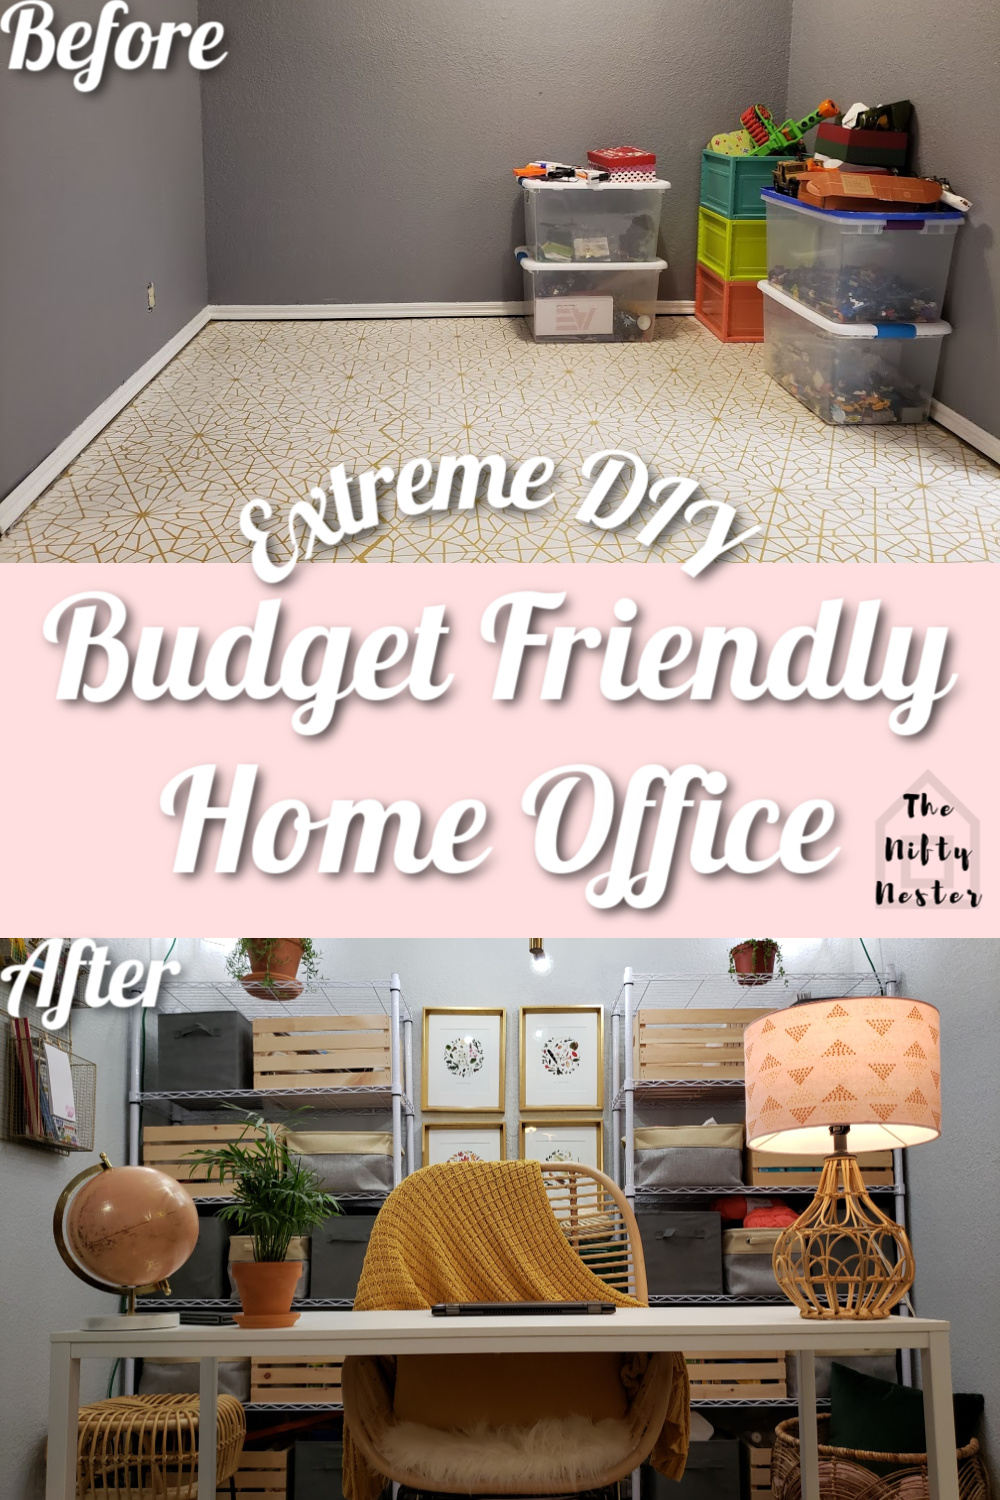 budget friendly home office pin 1